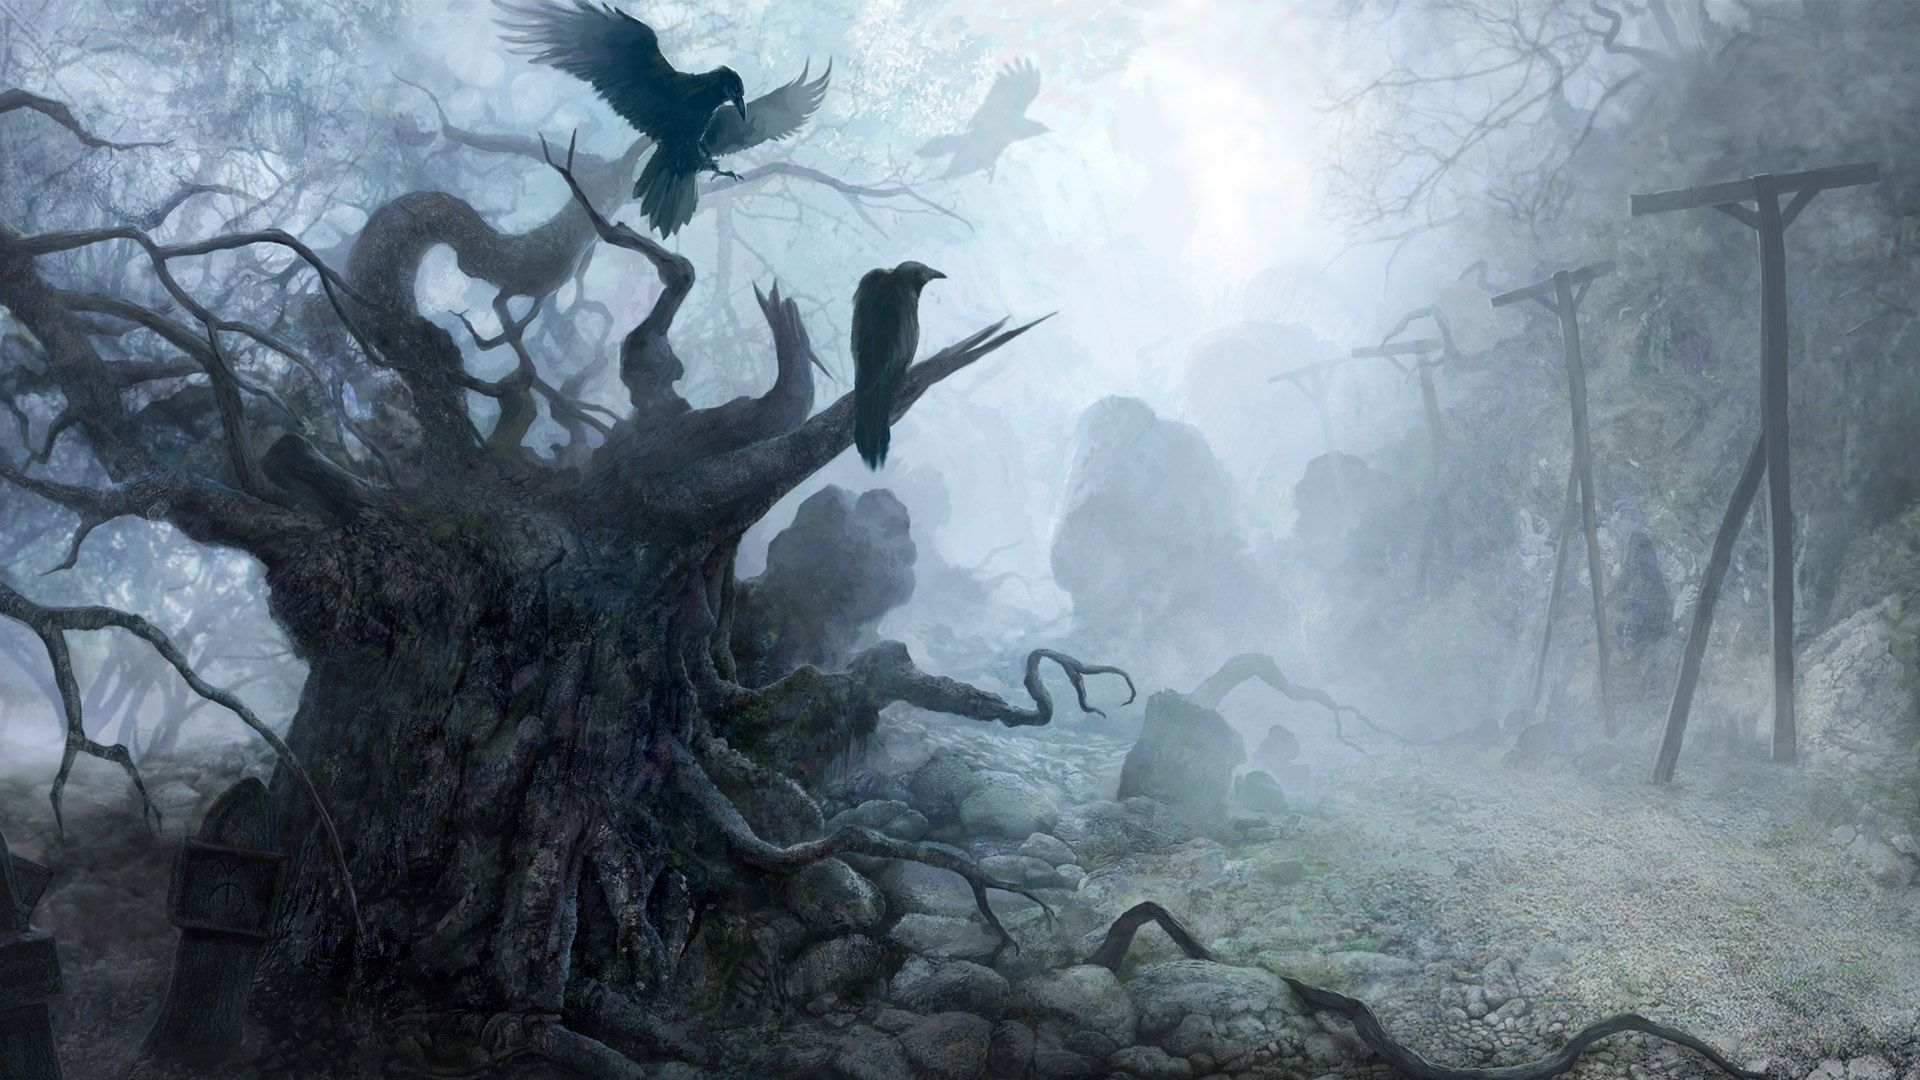 247 Gothic HD Wallpapers | Backgrounds - Wallpaper Abyss